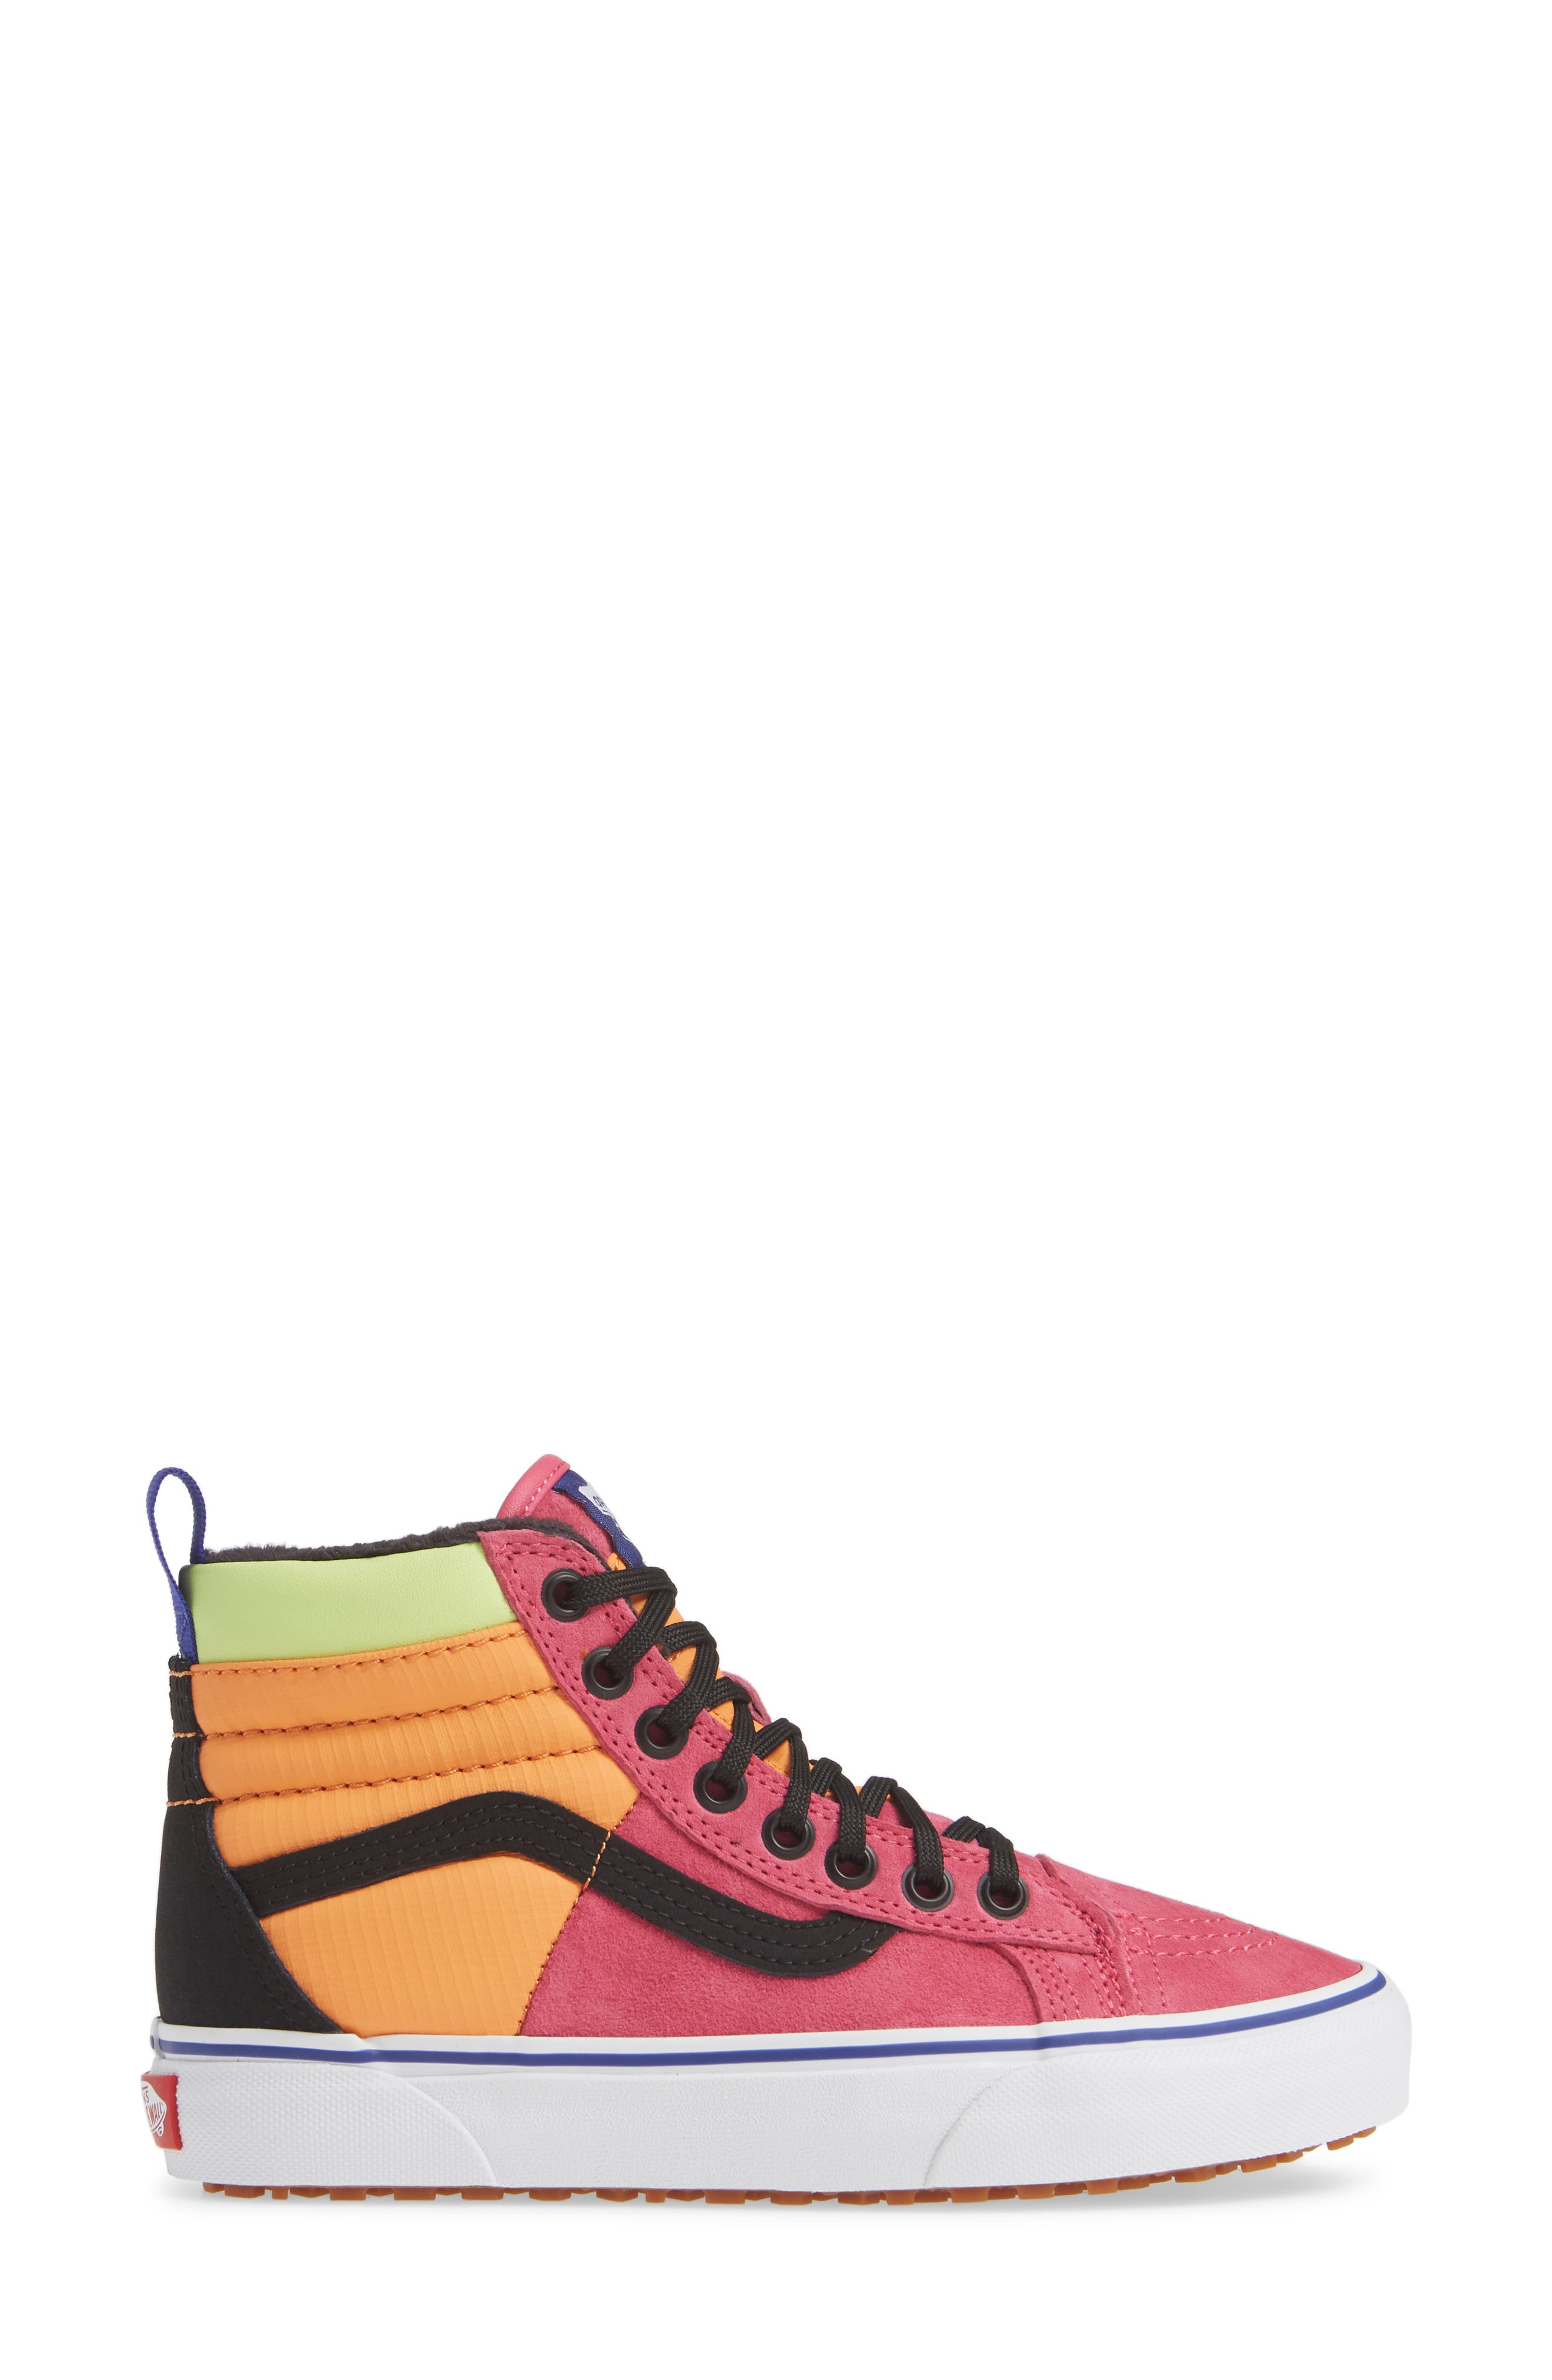 VANS, Sk8-Hi 46 MTE DX Sneaker, Alternate thumbnail 3, color, PINK YARROW/ TANGERINE/ BLACK